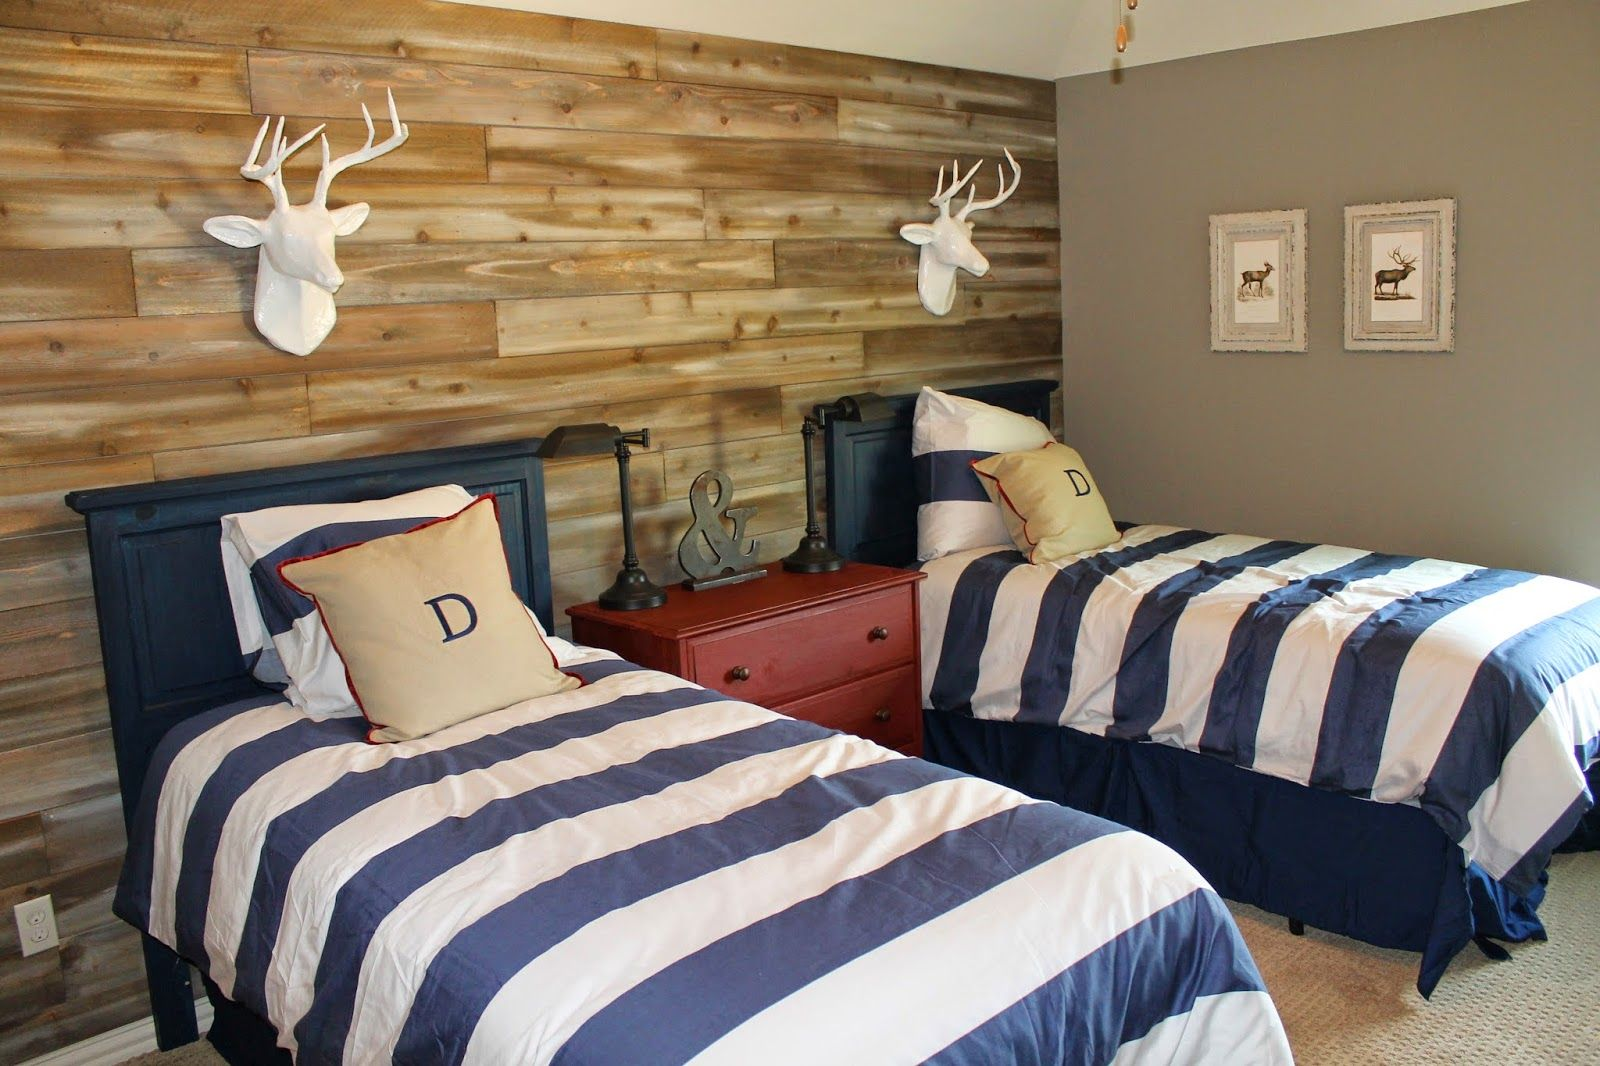 Wood feature walls woodland themed boys room shared space two twin beds new cedar planks - Twin bed for small space property ...